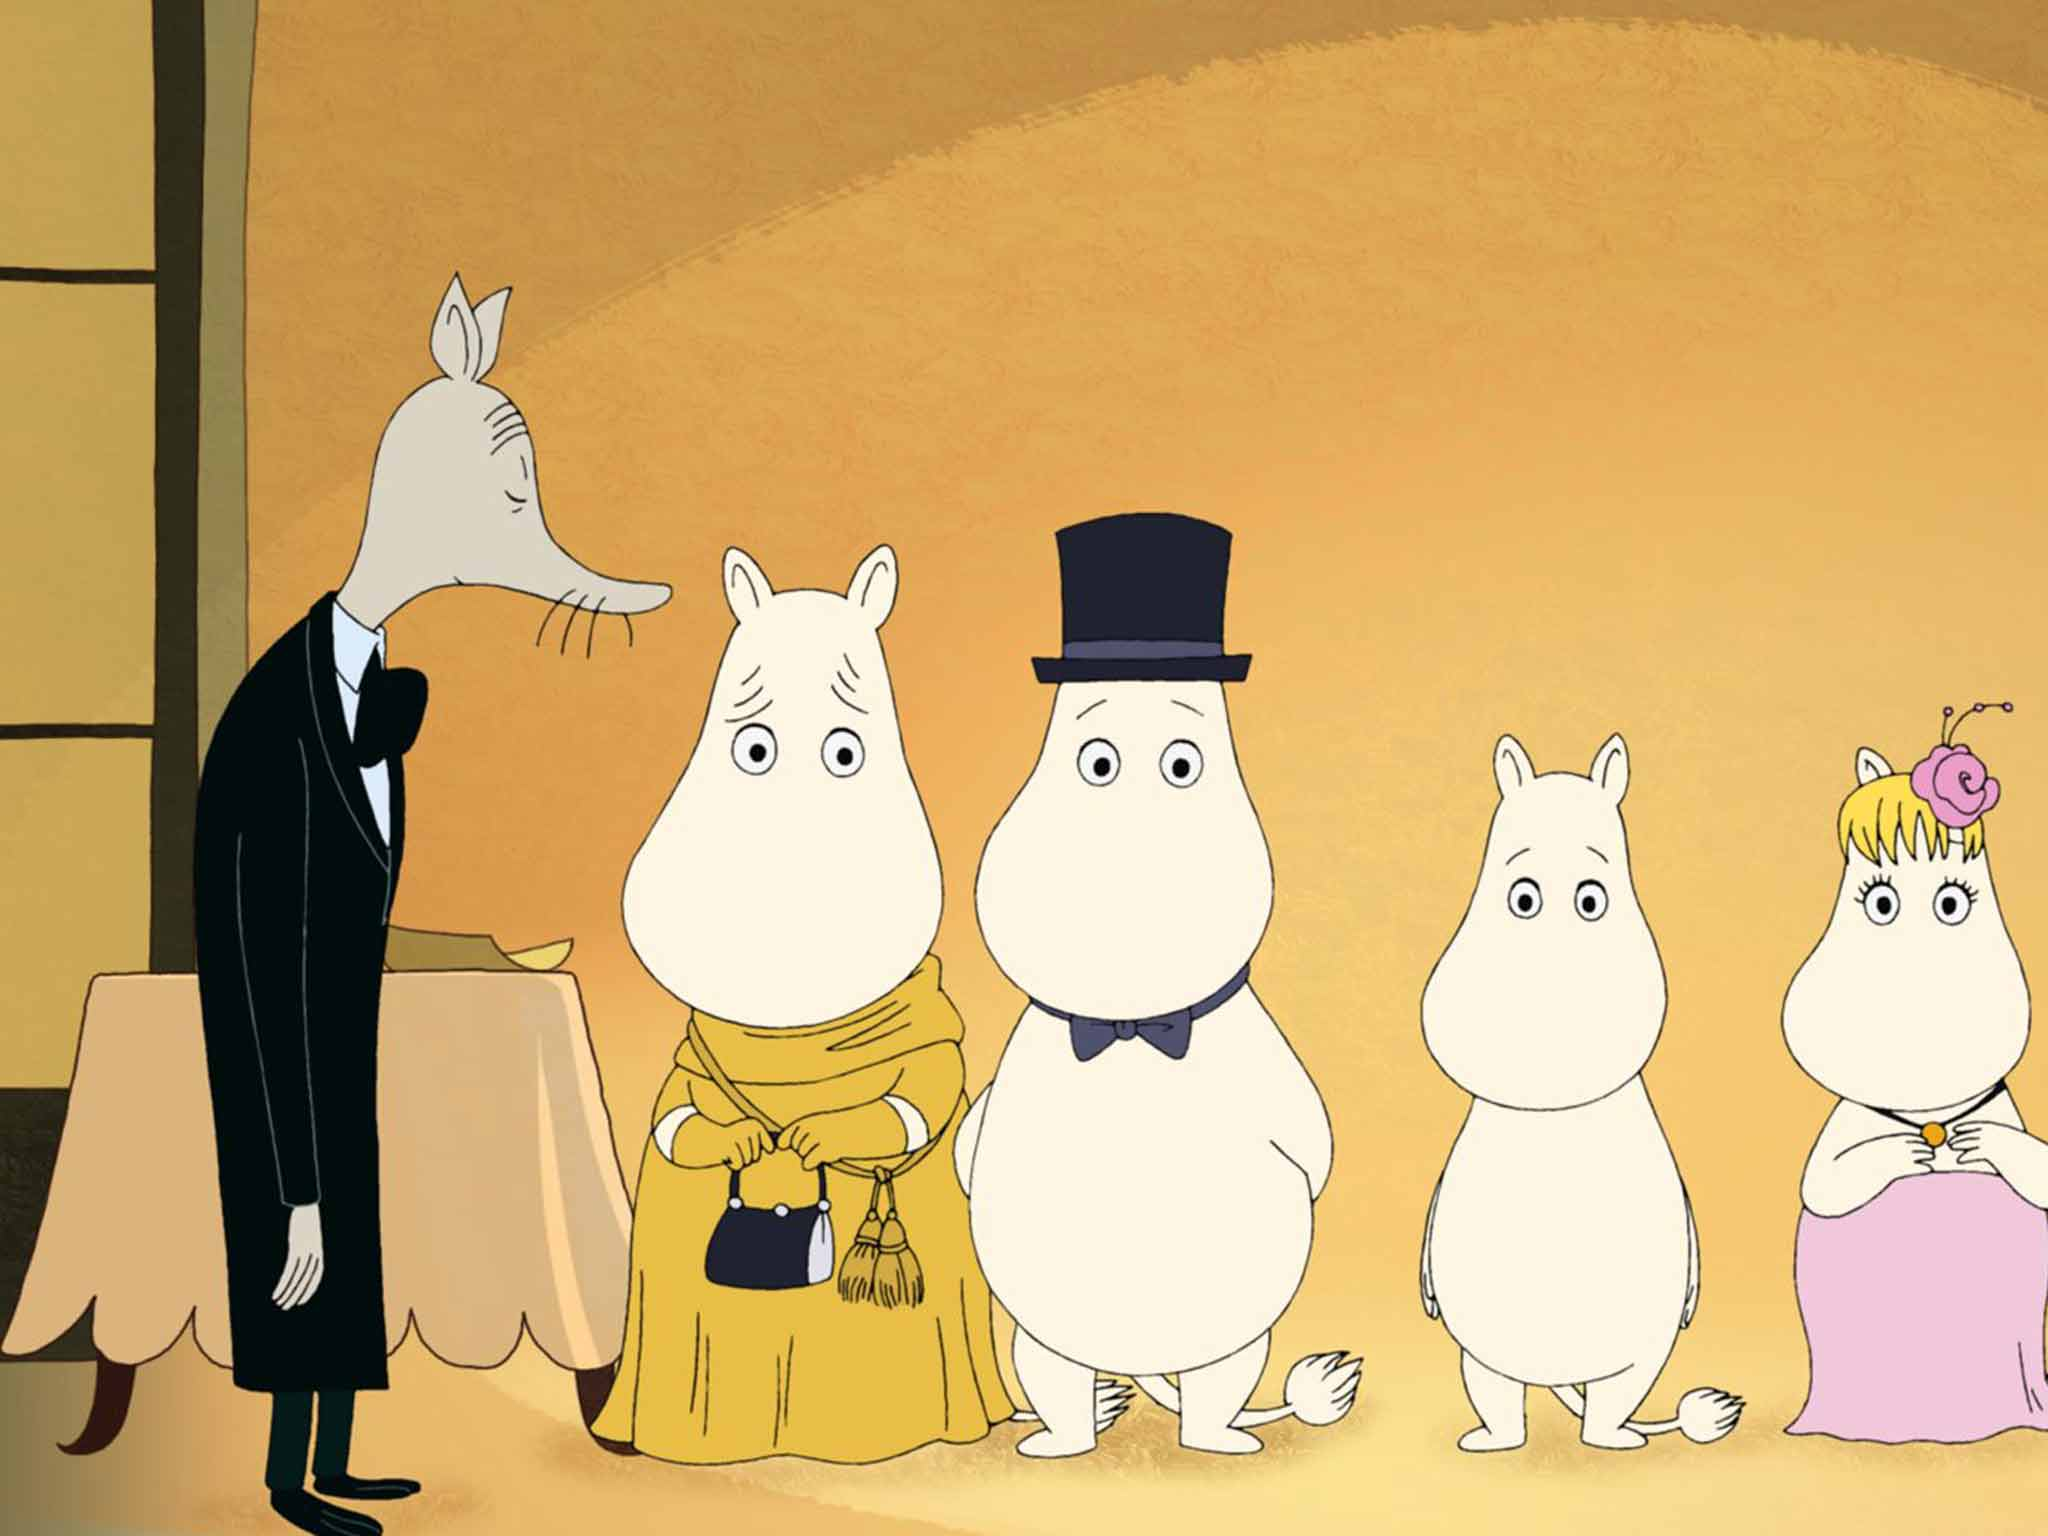 la-coutch-blog-video-moomin-anime-a-connaitre3